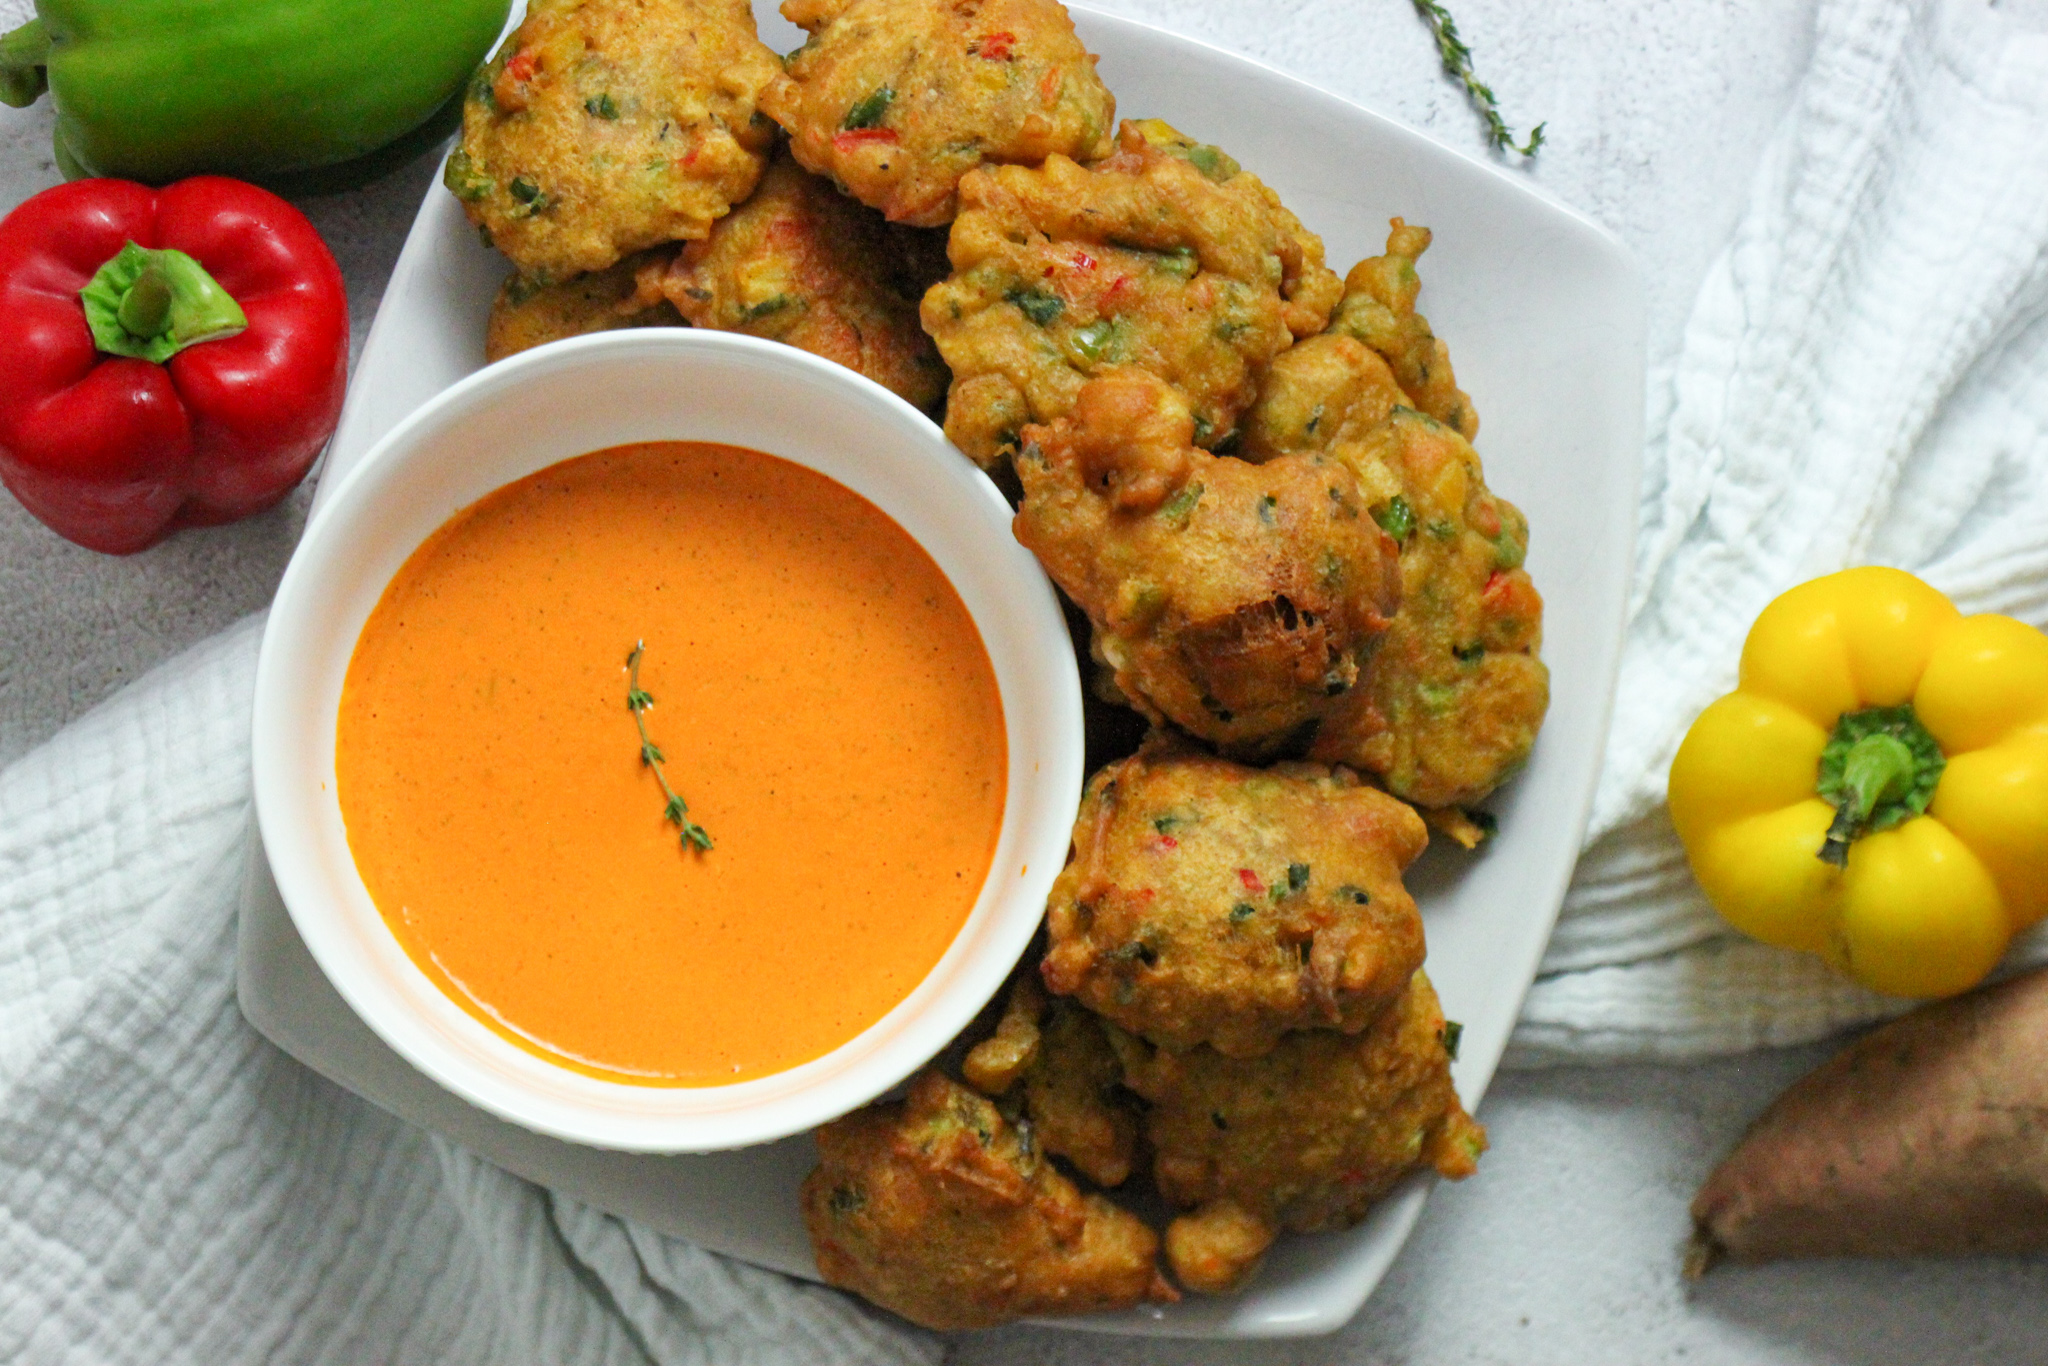 Vegan Sweet Potato Fritters with Roasted Red Pepper Aioli